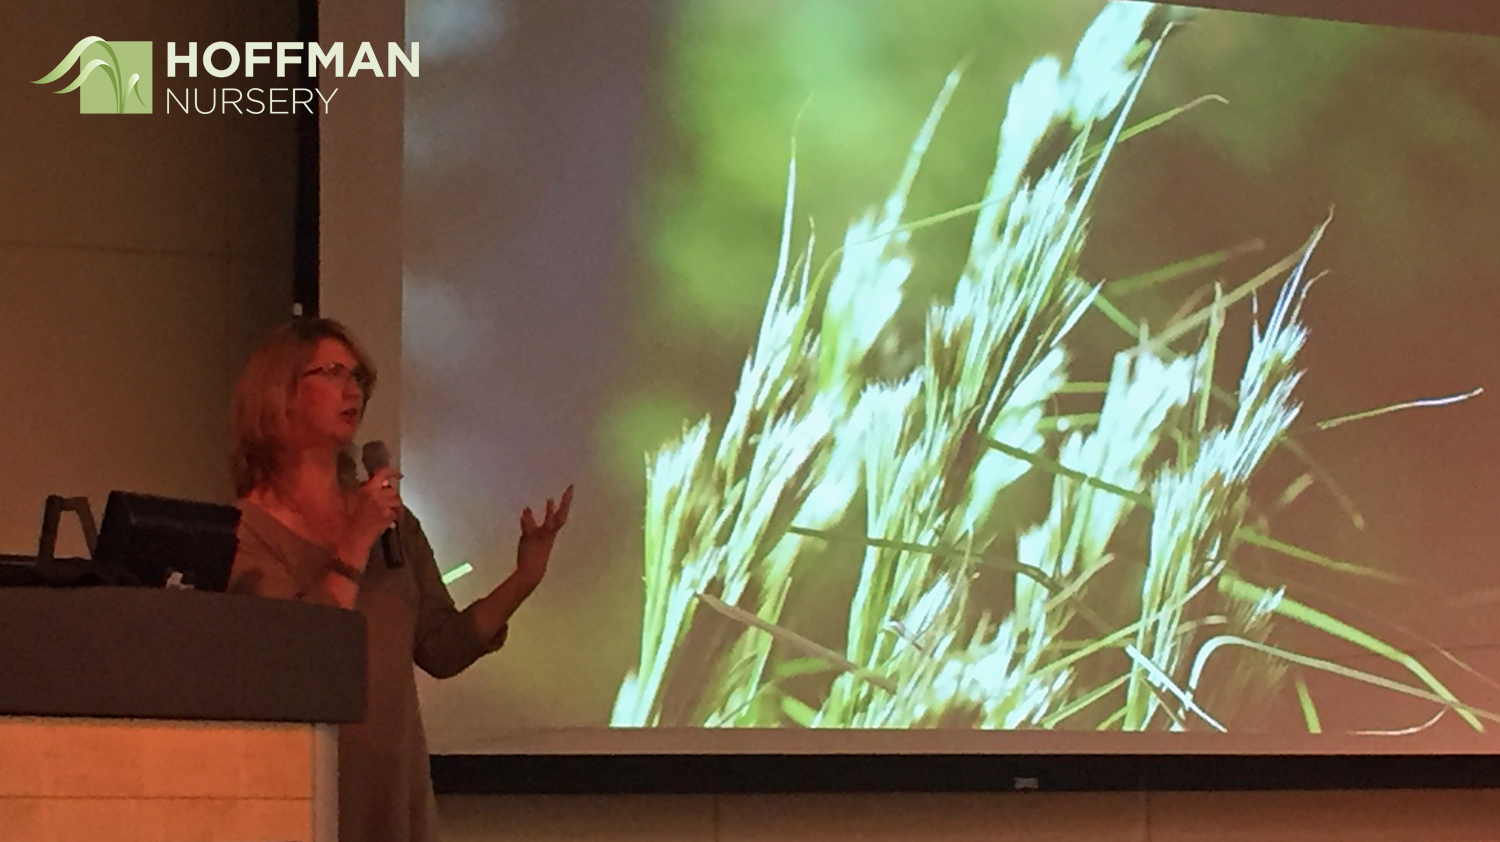 Our Marketing Director Shannon Currey talked about native grasses and sedges, focusing on the important role they play in building today's landscapes.